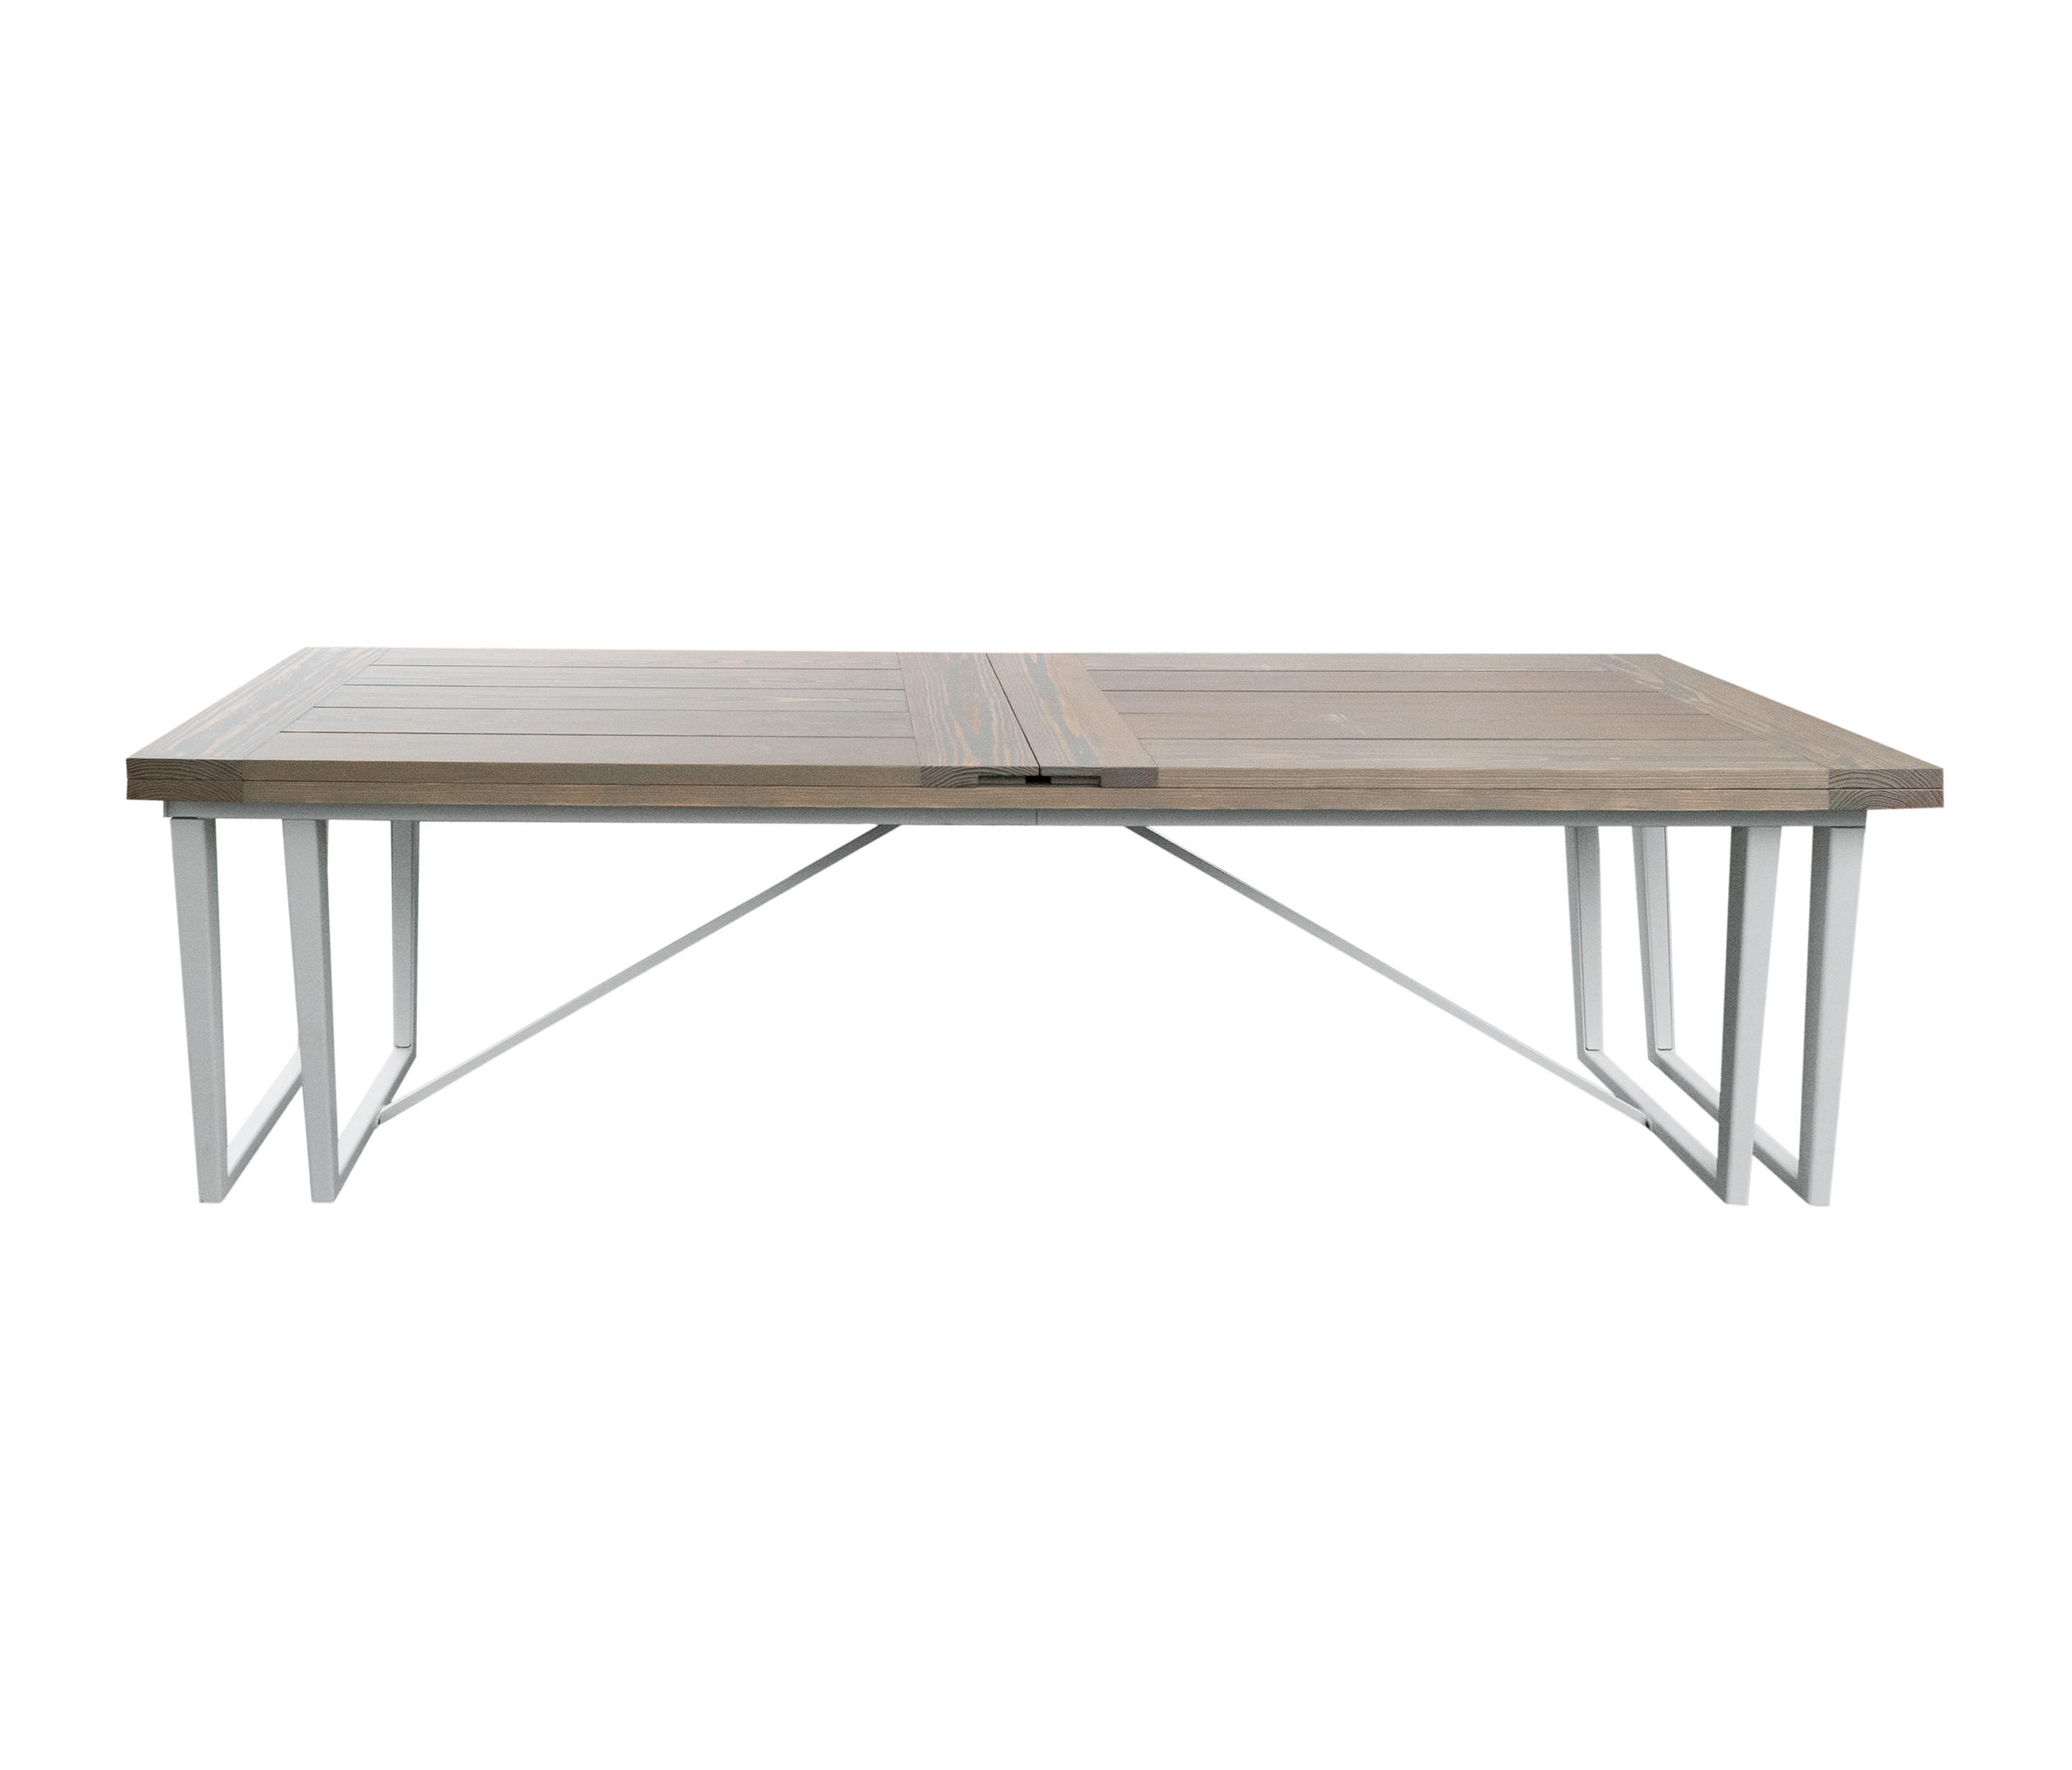 Durban dining tables from unopiù architonic